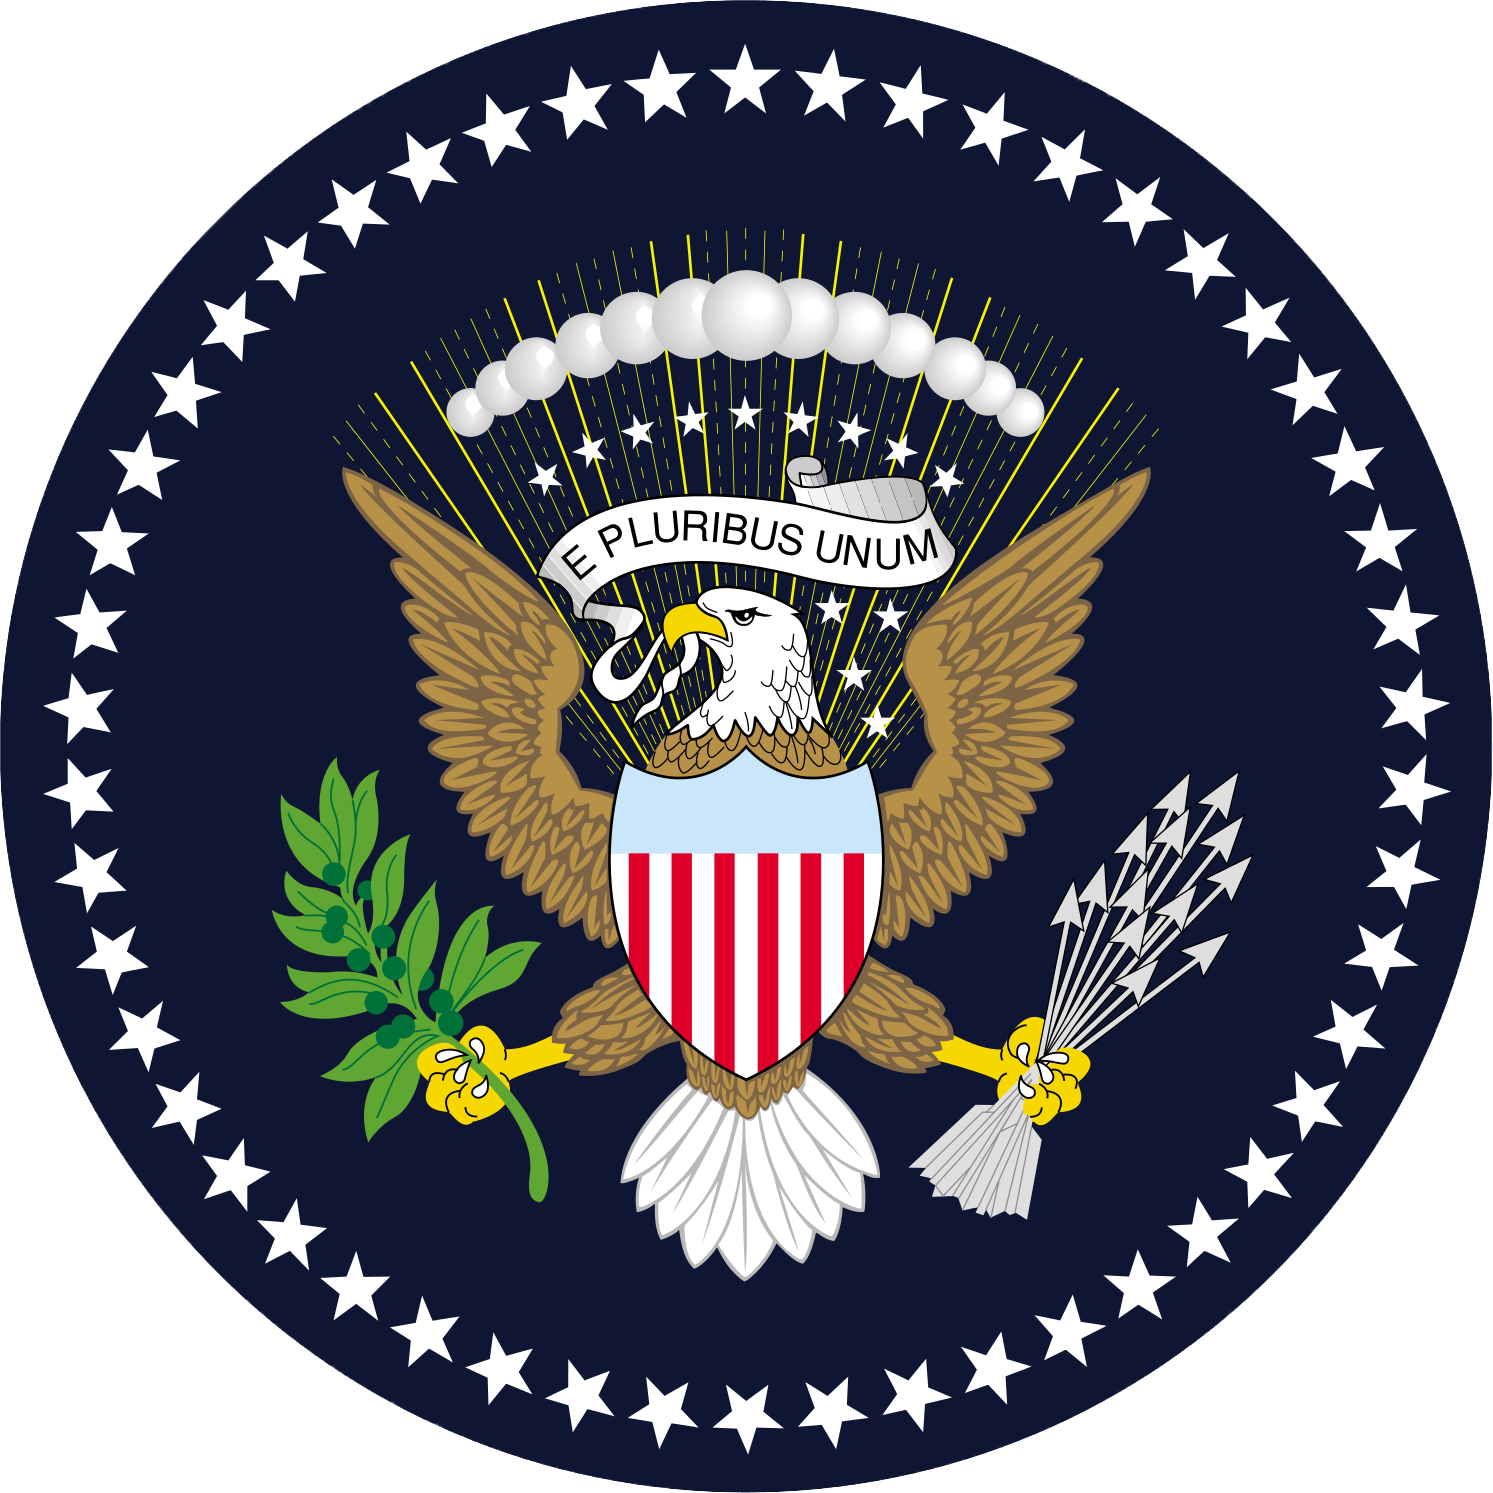 Get President Seal stock illustrations from iStock Find highquality royaltyfree vector images that you wont find anywhere else Find highquality royaltyfree vector images that you wont find anywhere else